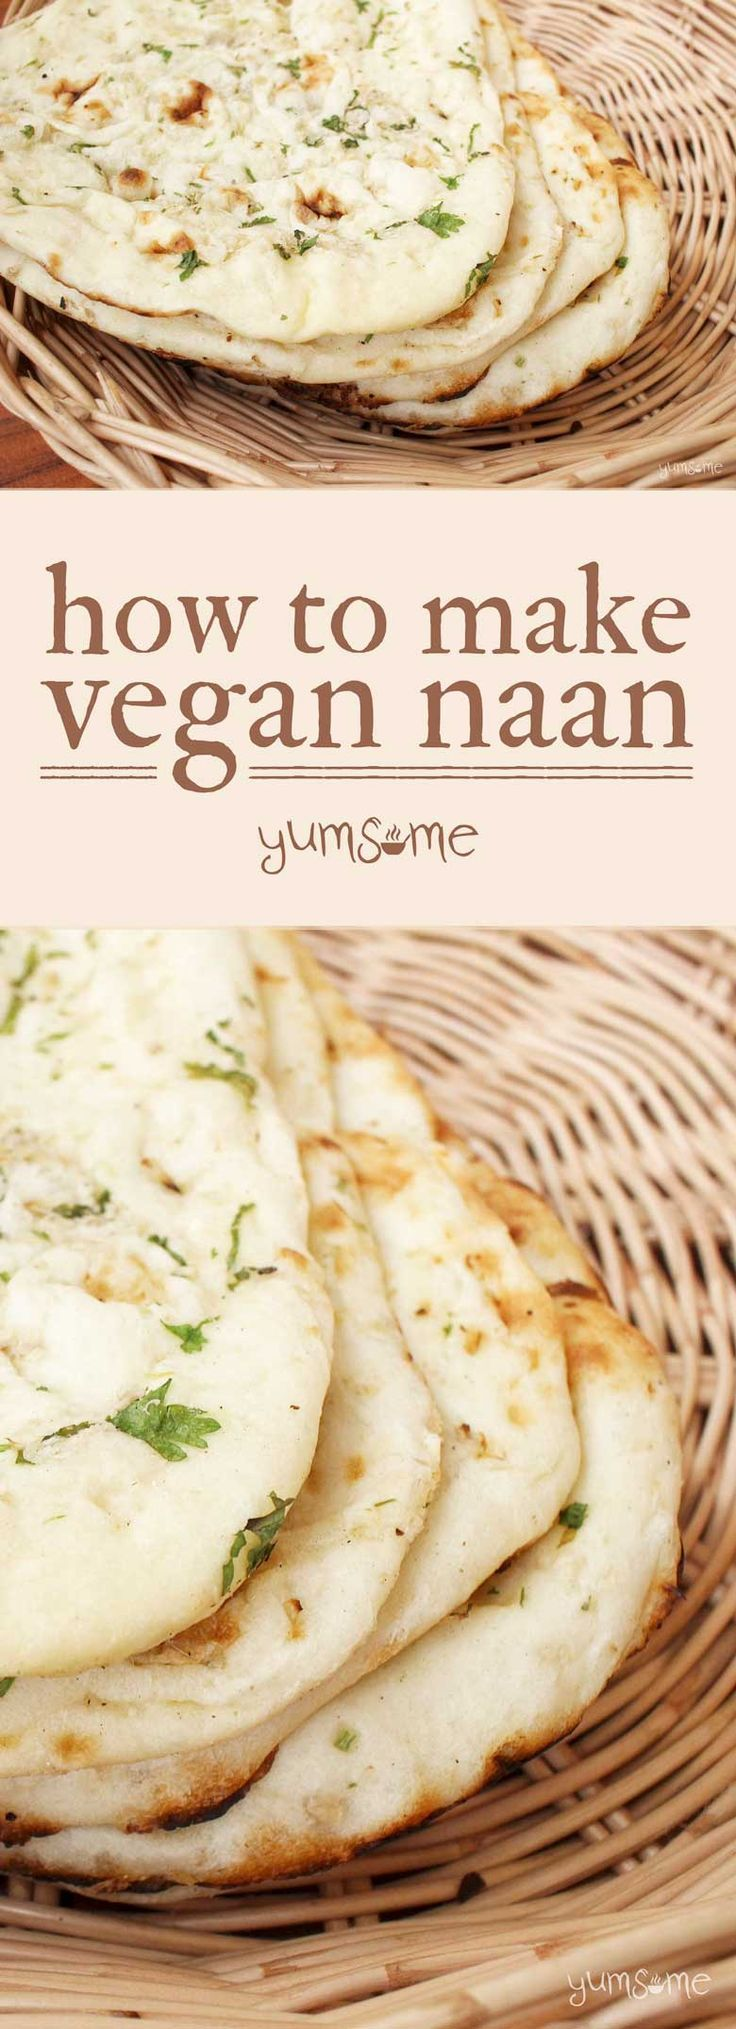 My Naan Is Soft And Pillowy With A Little Bit Of Chewiness If You Love The Naan In Indian Restauran Whole Food Recipes Vegan Recipes Vegetarian Vegan Recipes